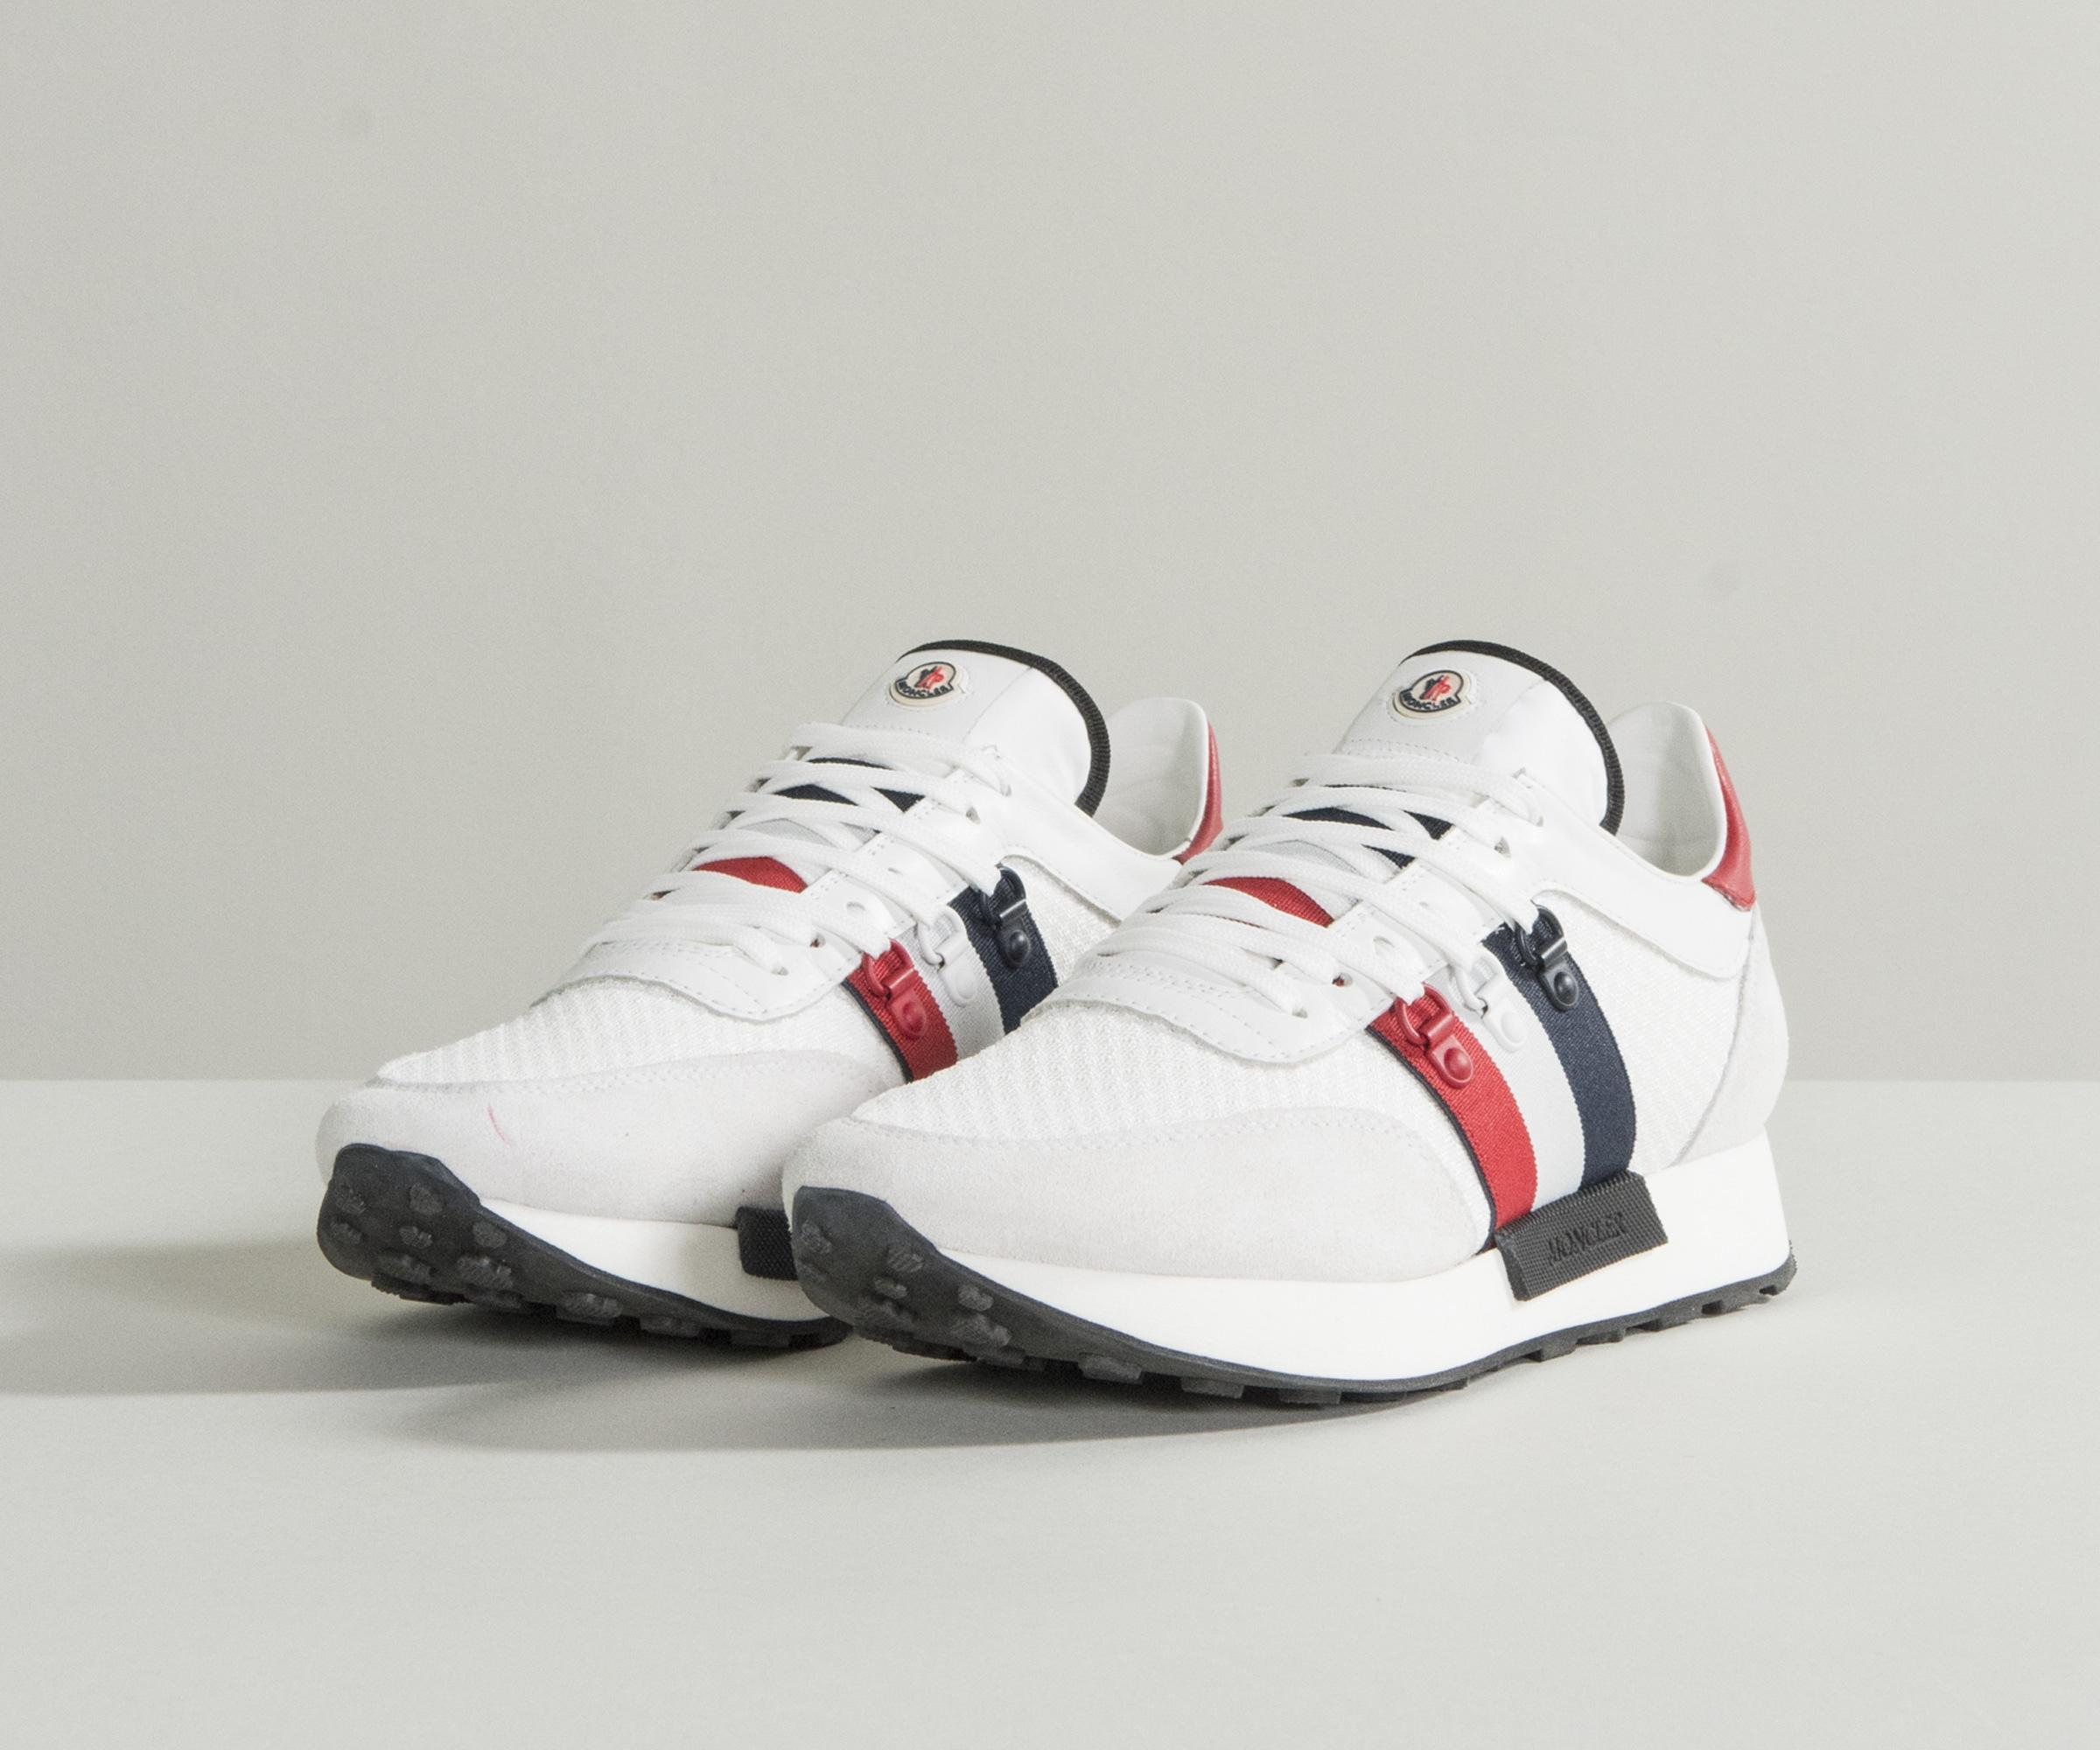 96f195528 Moncler  new Horace  Trainers White in White for Men - Save ...